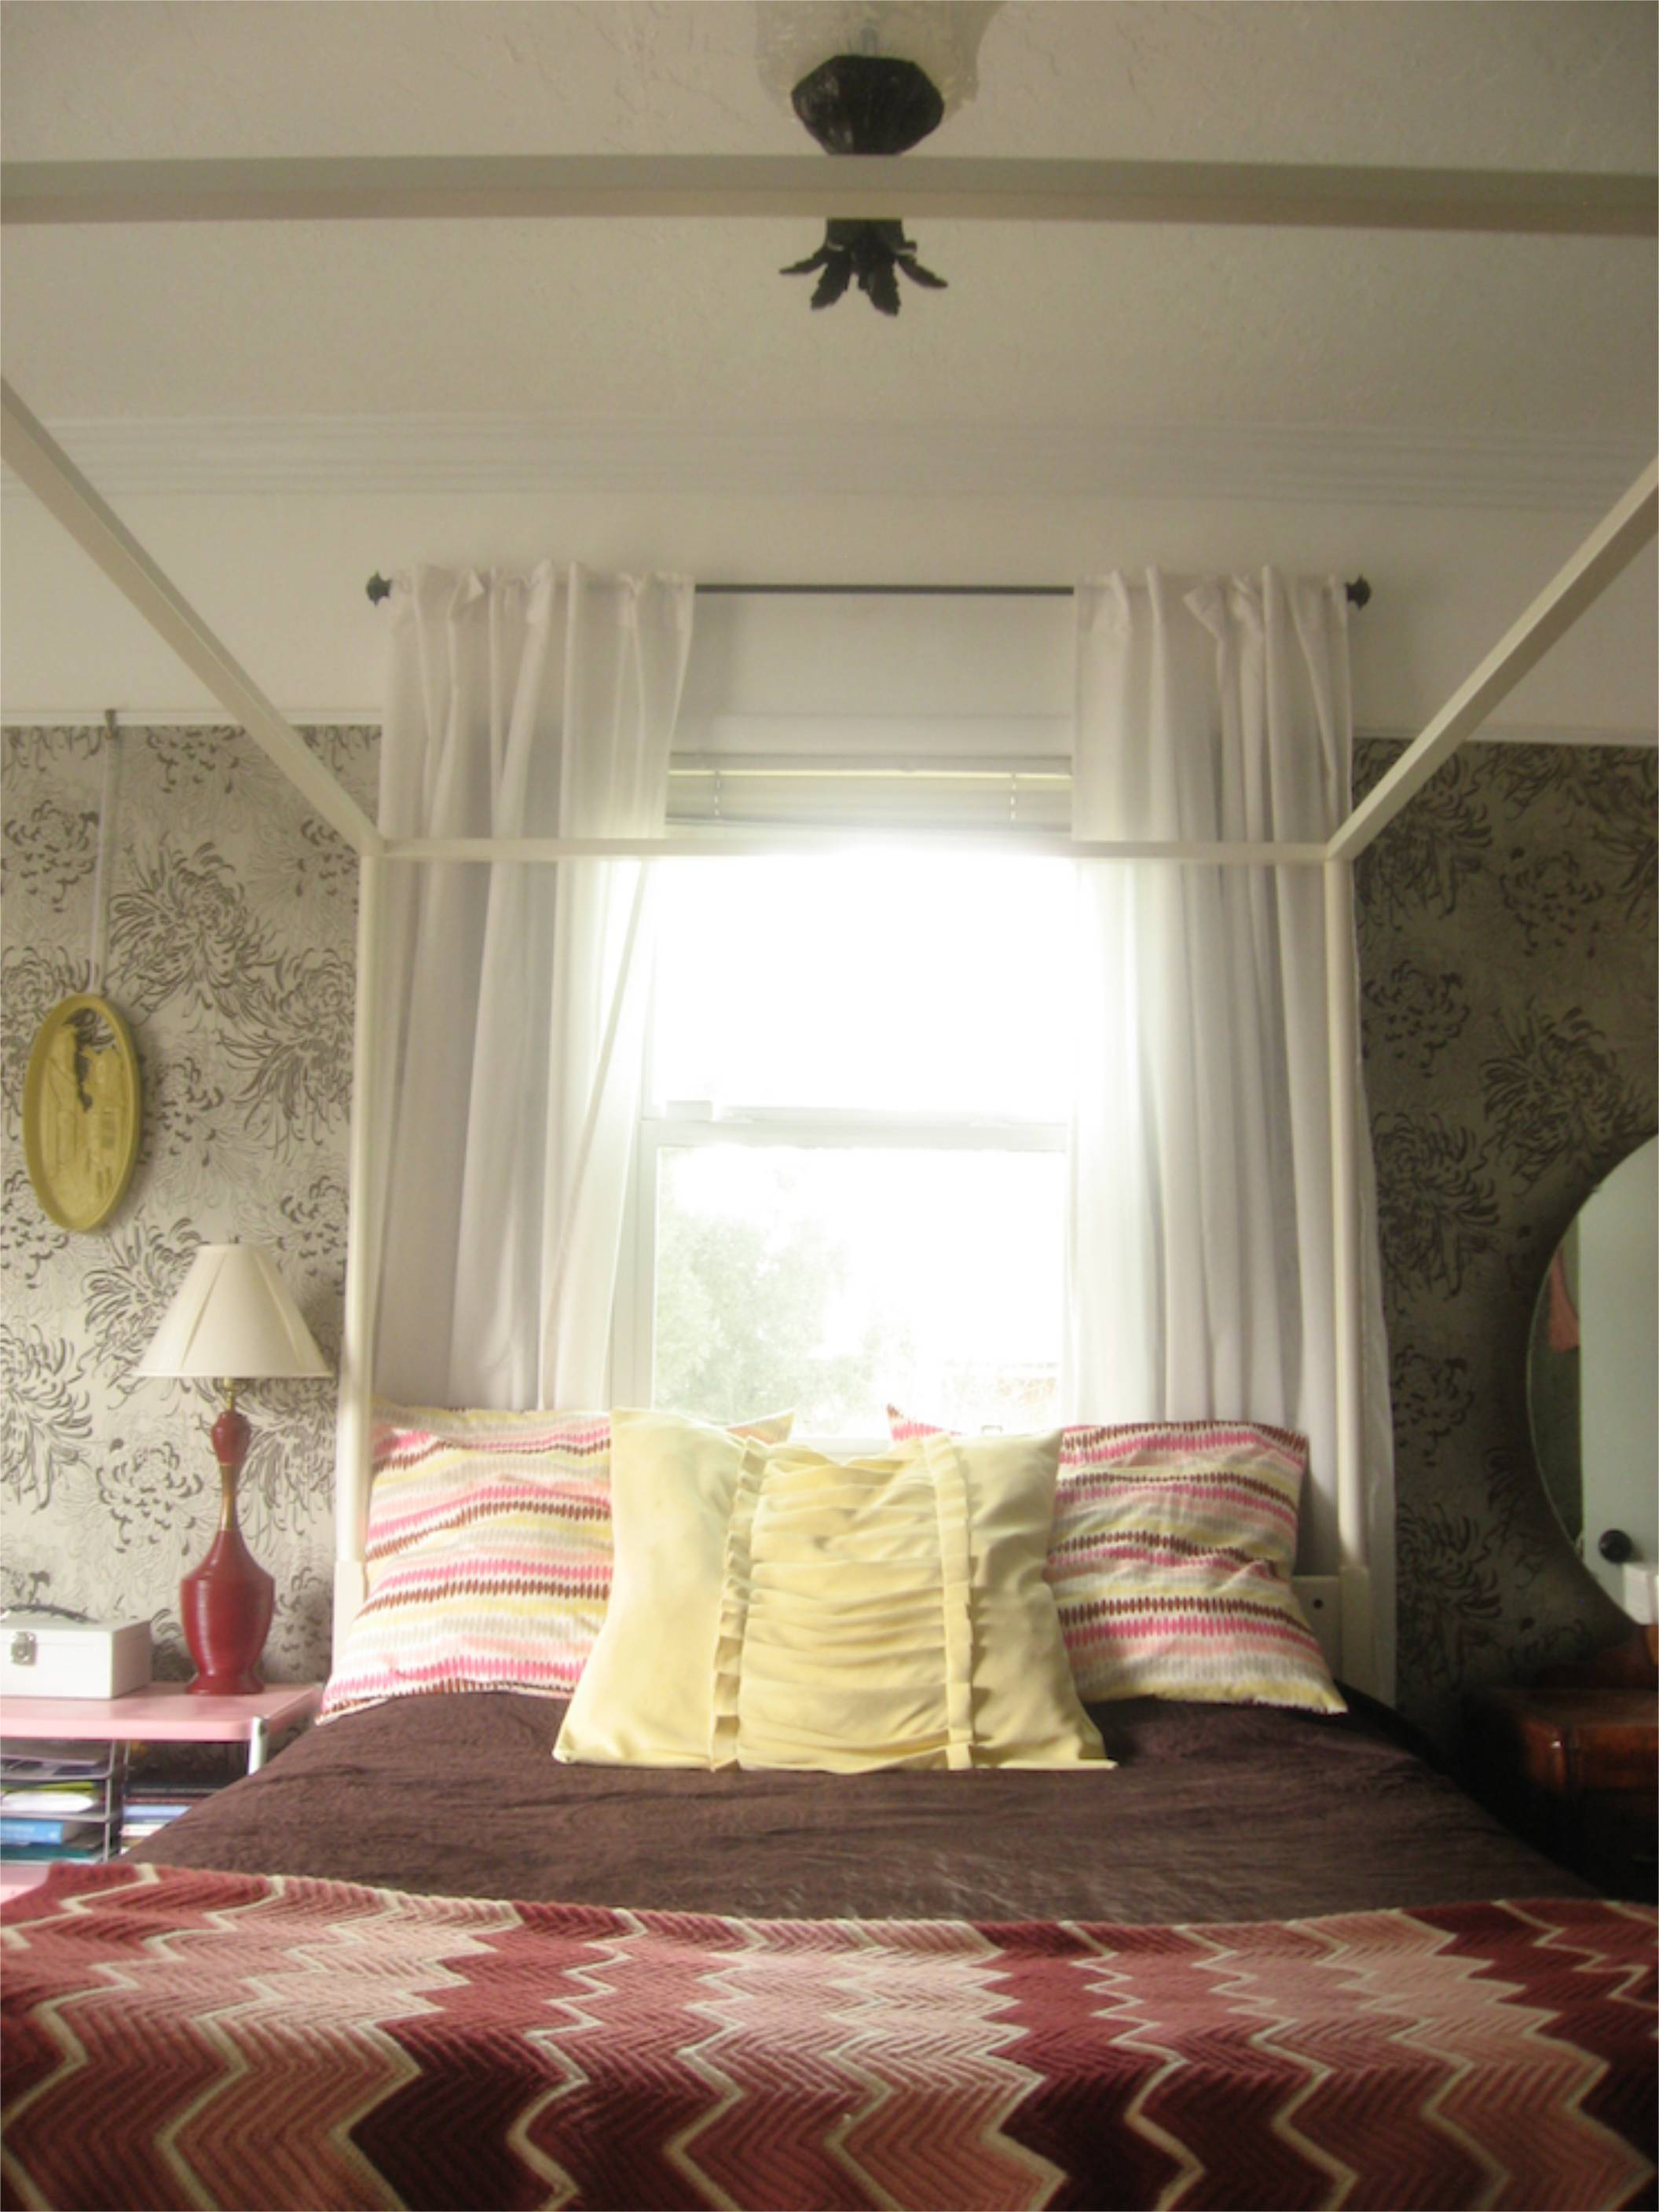 wallpaper transom window four poster bedroom